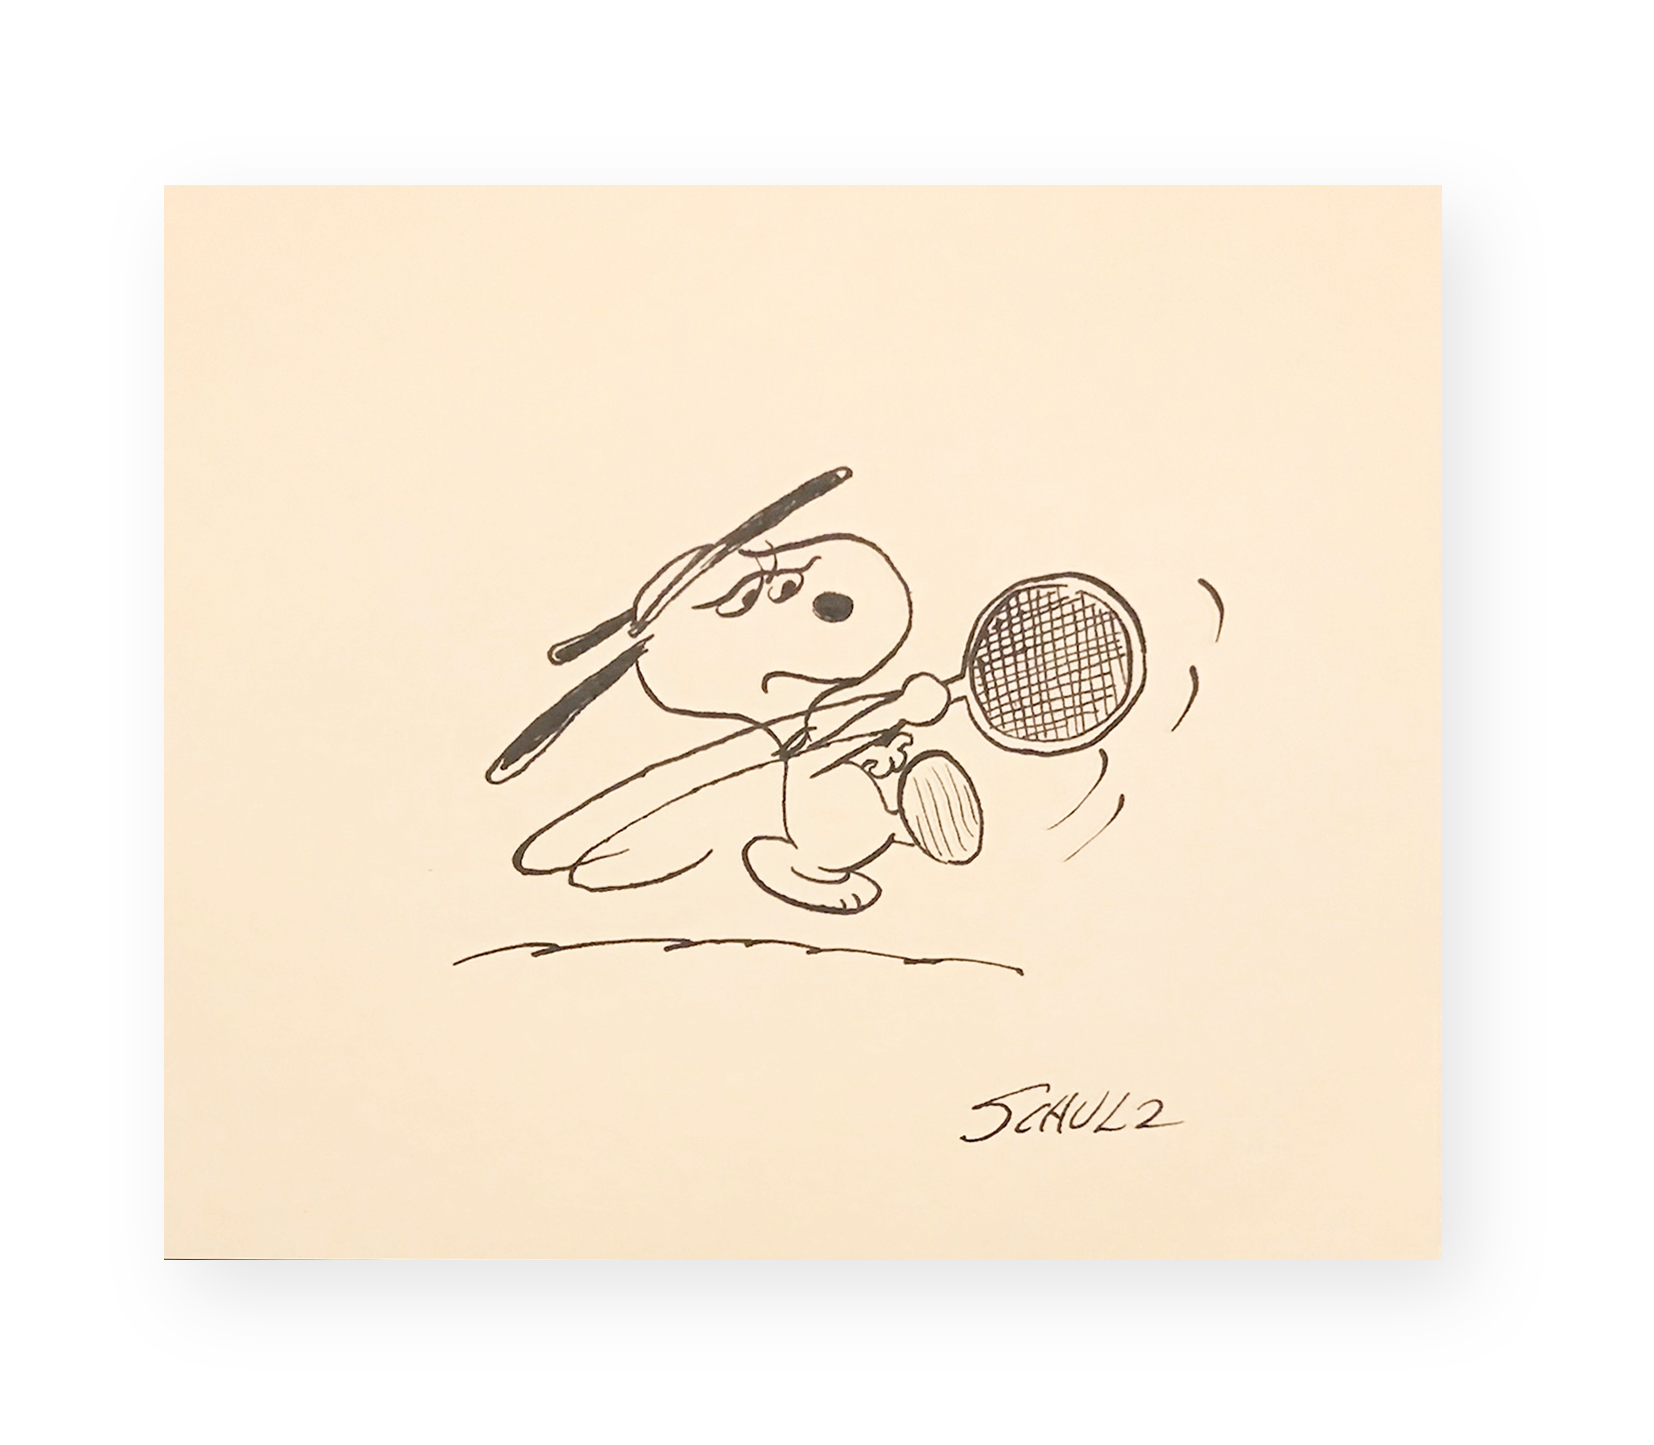 "Charles Schulz  ""What a Racquet!""  Snoopy Tennis  Ink on paper  9 x 11 in.  Circa 1970's  *Ted Long Collection"